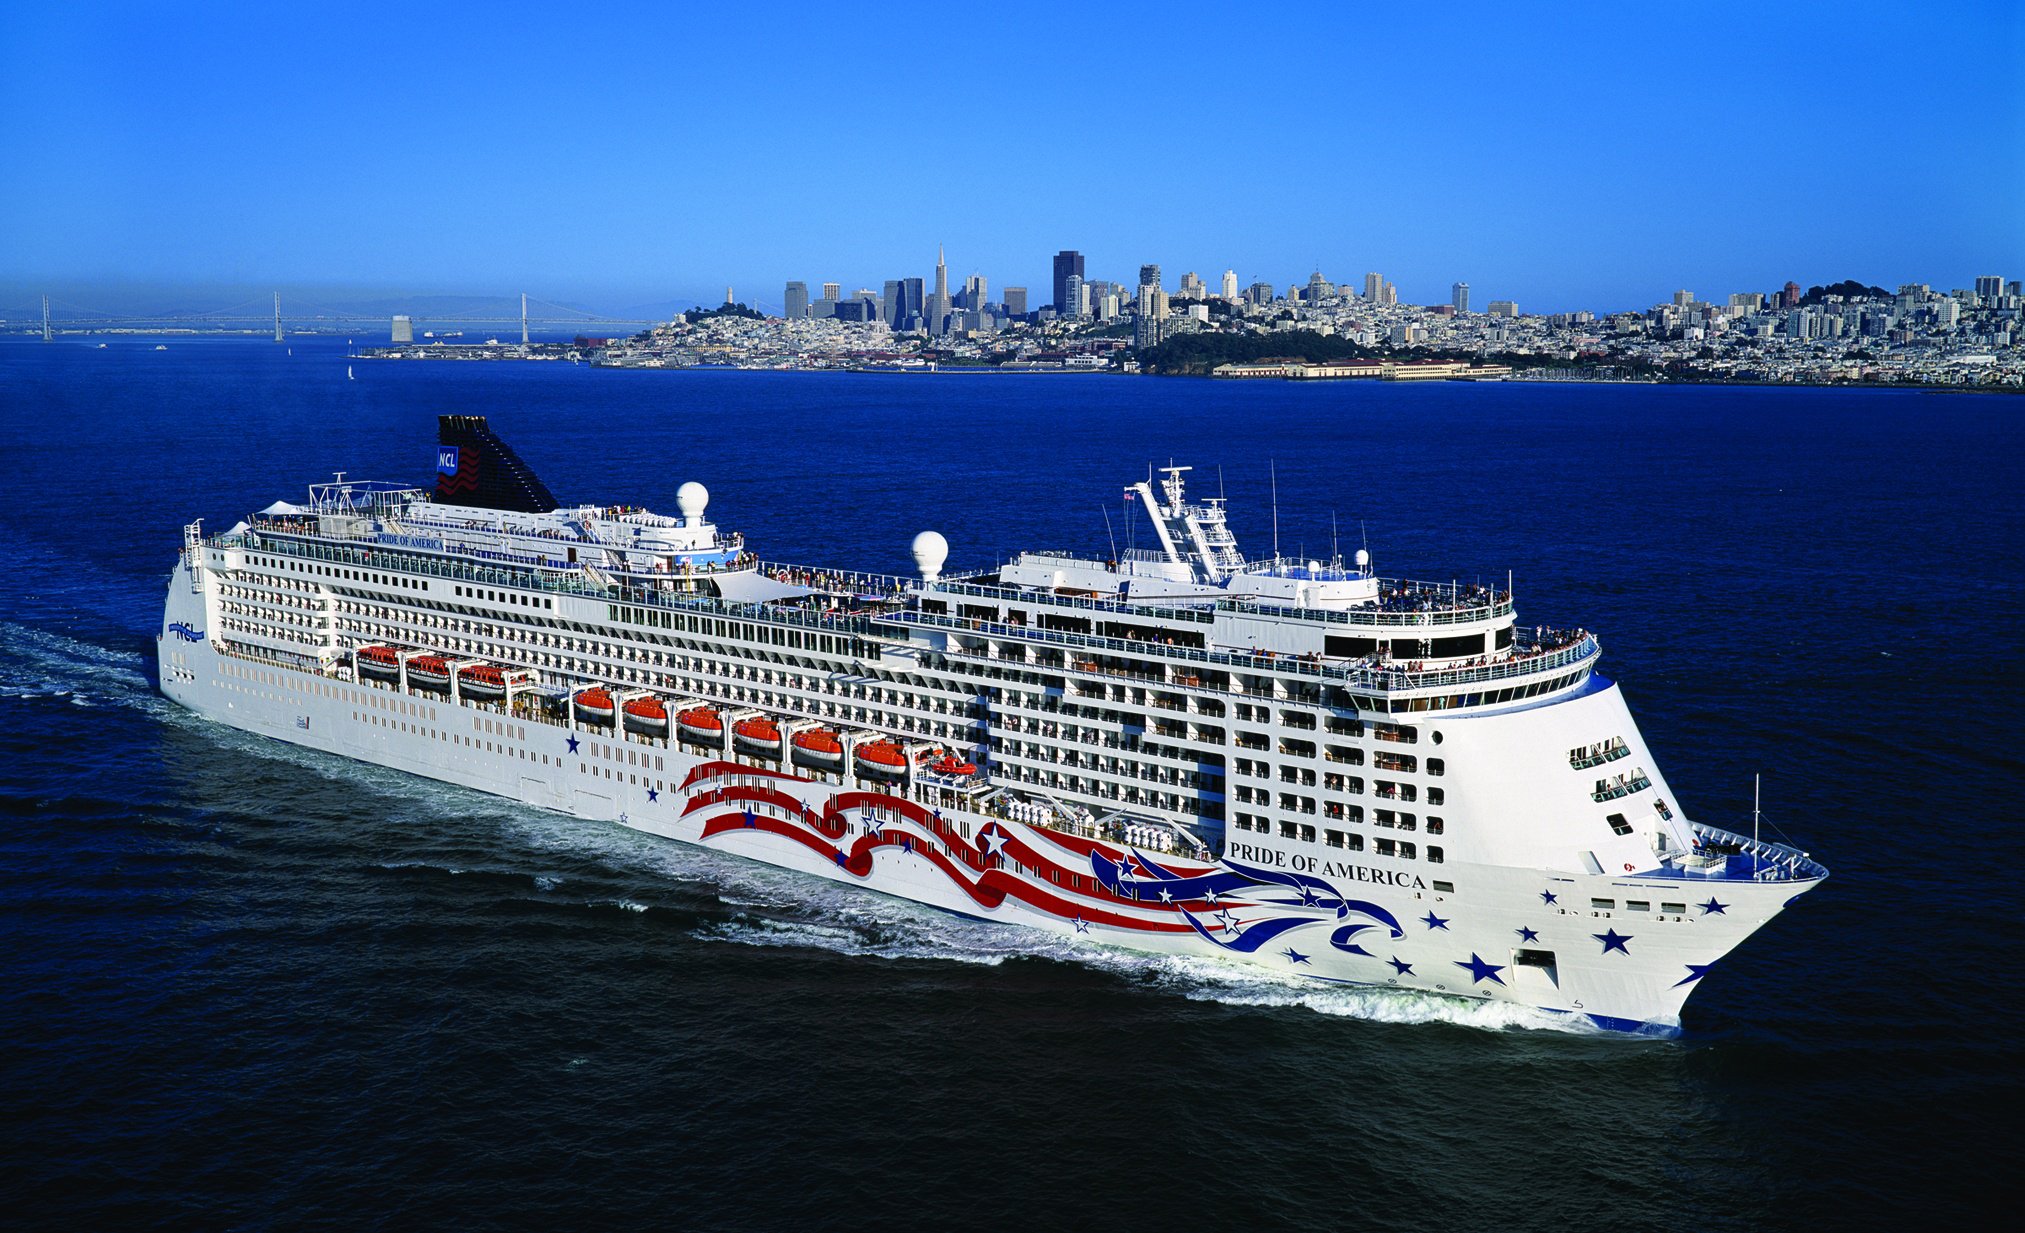 Ncl pride of america kommt ins trockendock for Best us cruise lines